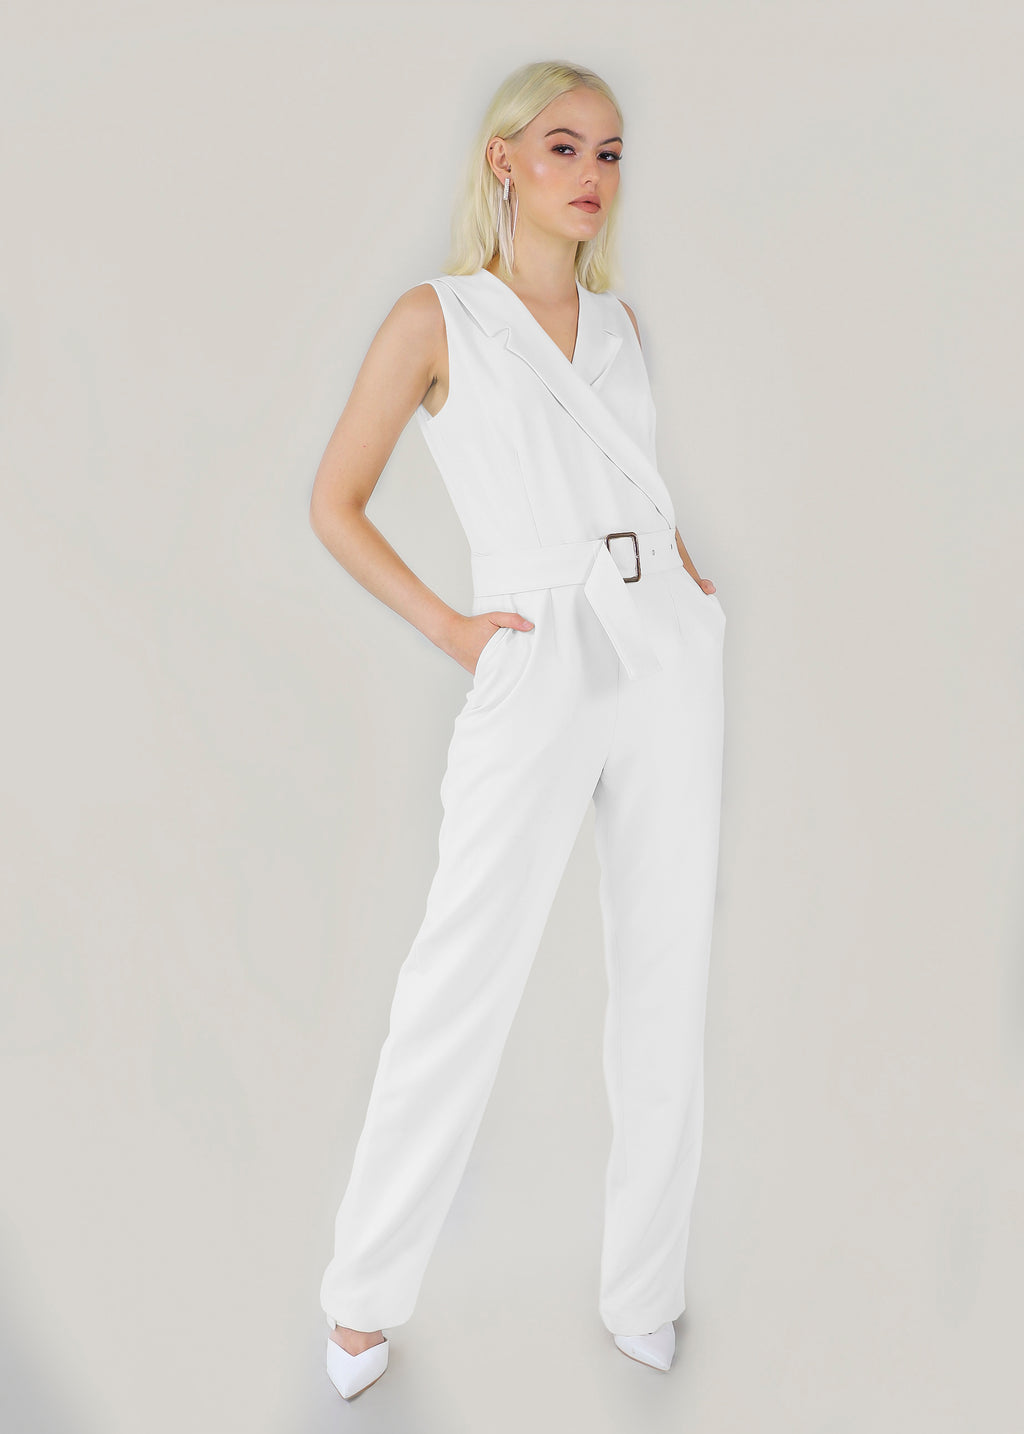 Women's-Peerless-Detachable-Jumpsuit